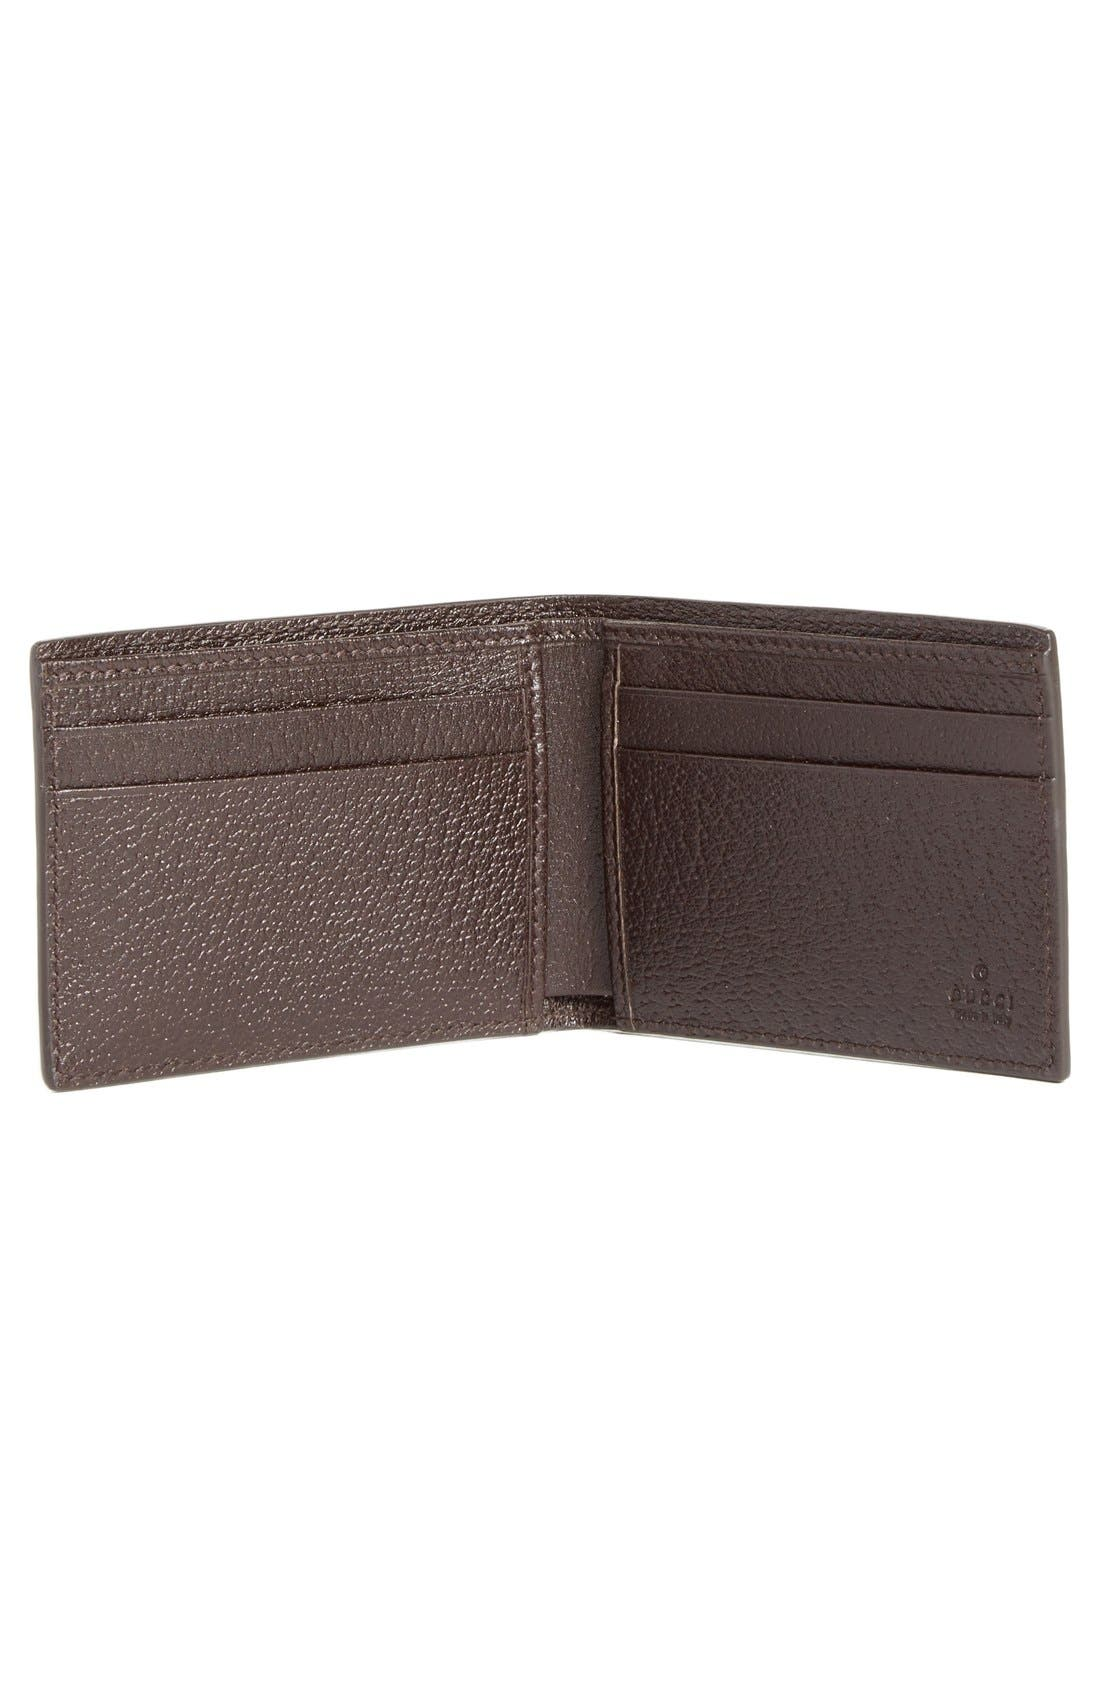 Marmont Leather Wallet,                             Alternate thumbnail 6, color,